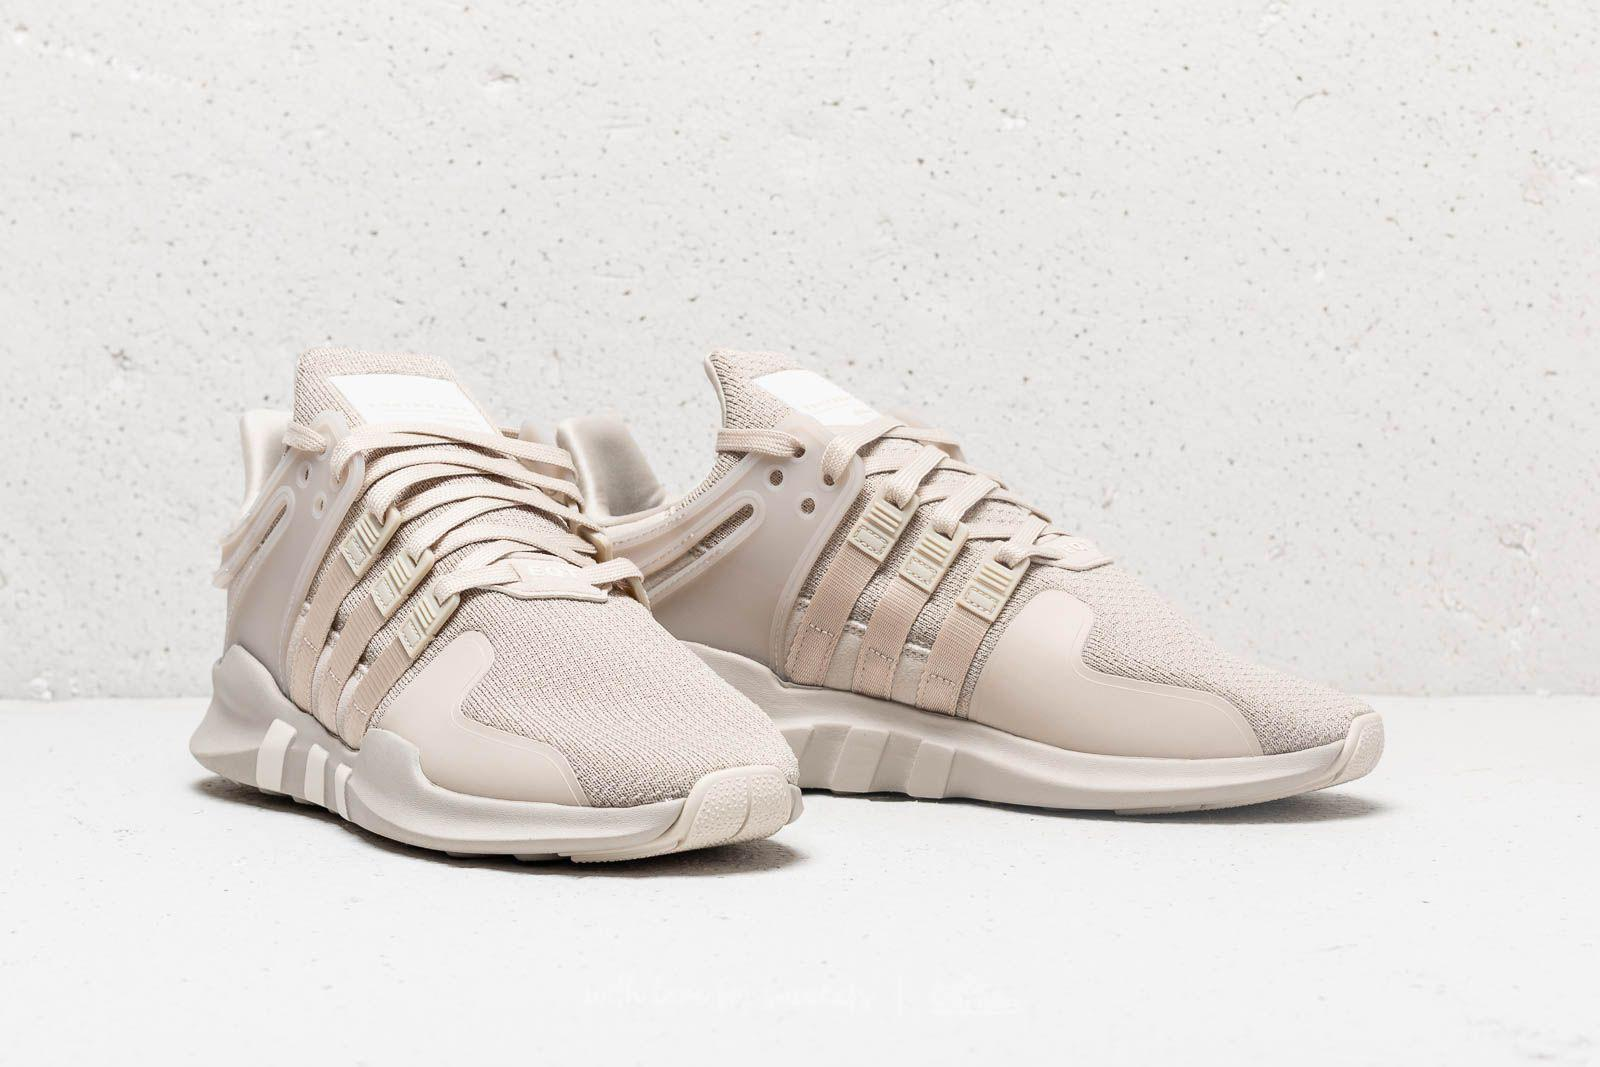 lowest price 11b3e d906d Lyst - adidas Originals Adidas Eqt Support Adv W Clear Brown